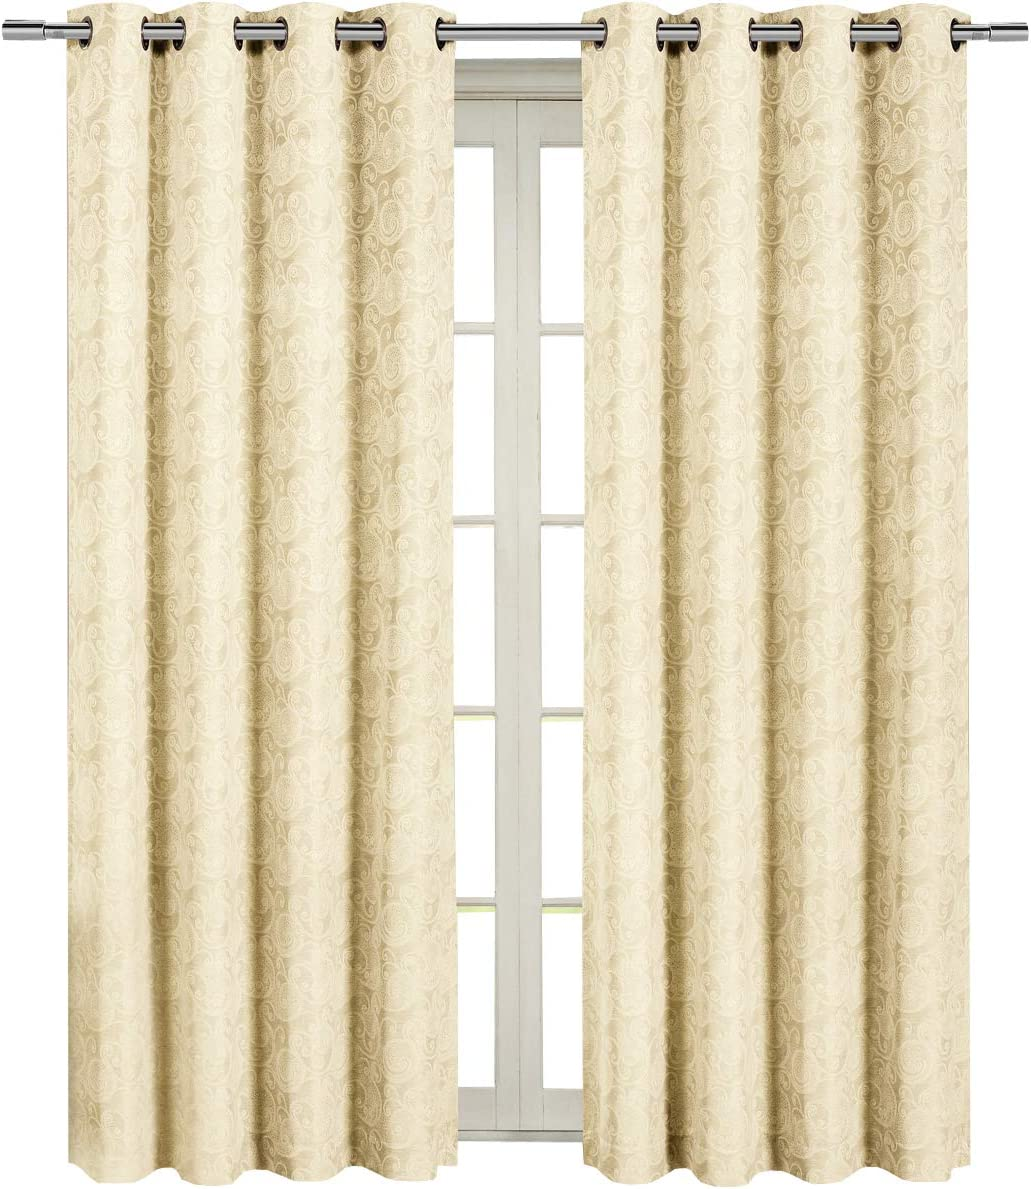 Royal Tradition Tabitha 54-Inch Wide x 108-Inch Long, Jacquard Grommet Top Single Curtain, Beige